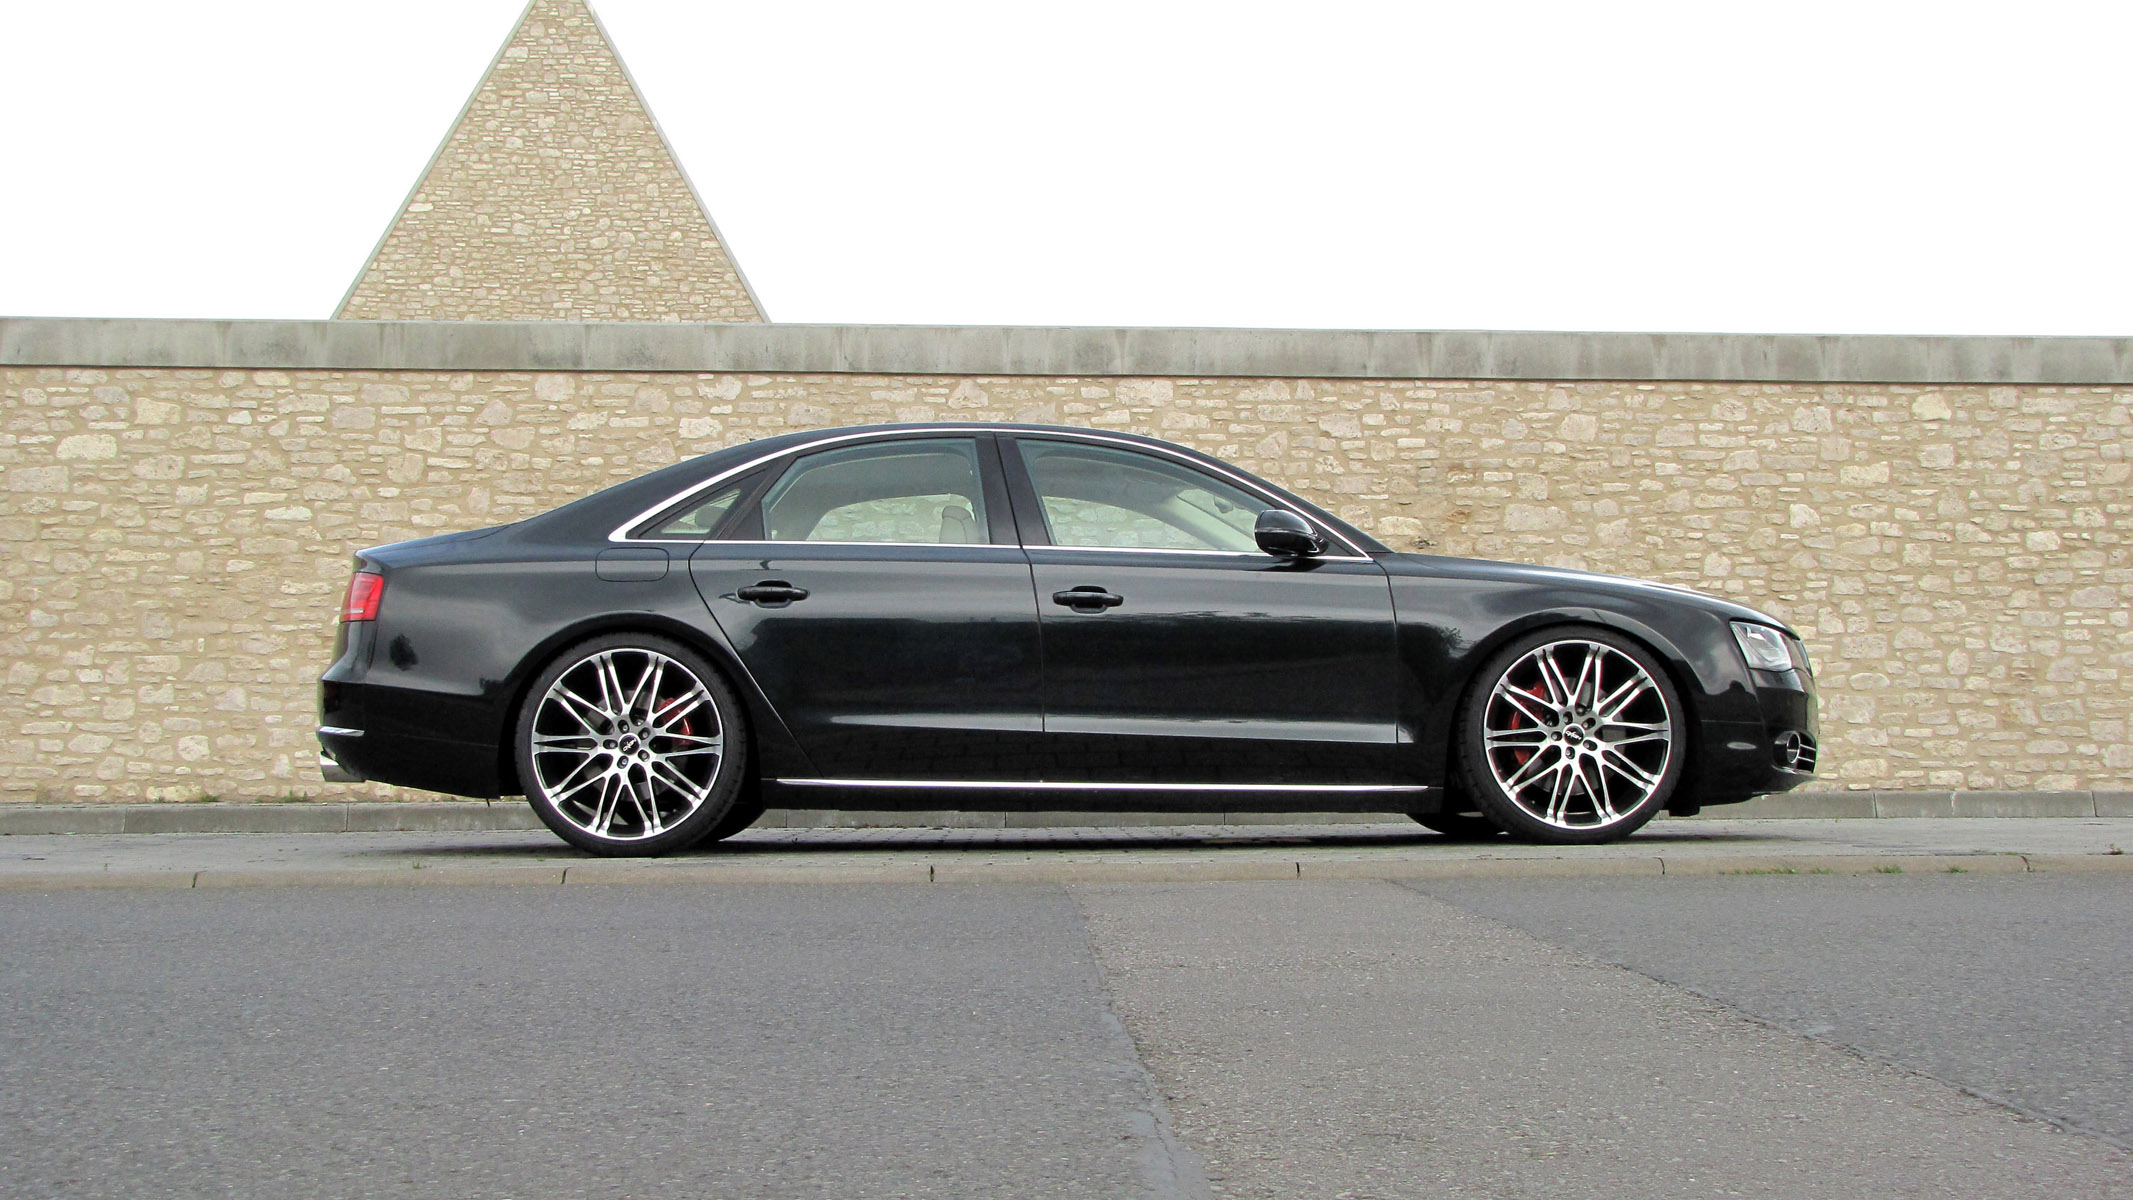 2014 senner tuning audi a8 latest audi news. Black Bedroom Furniture Sets. Home Design Ideas